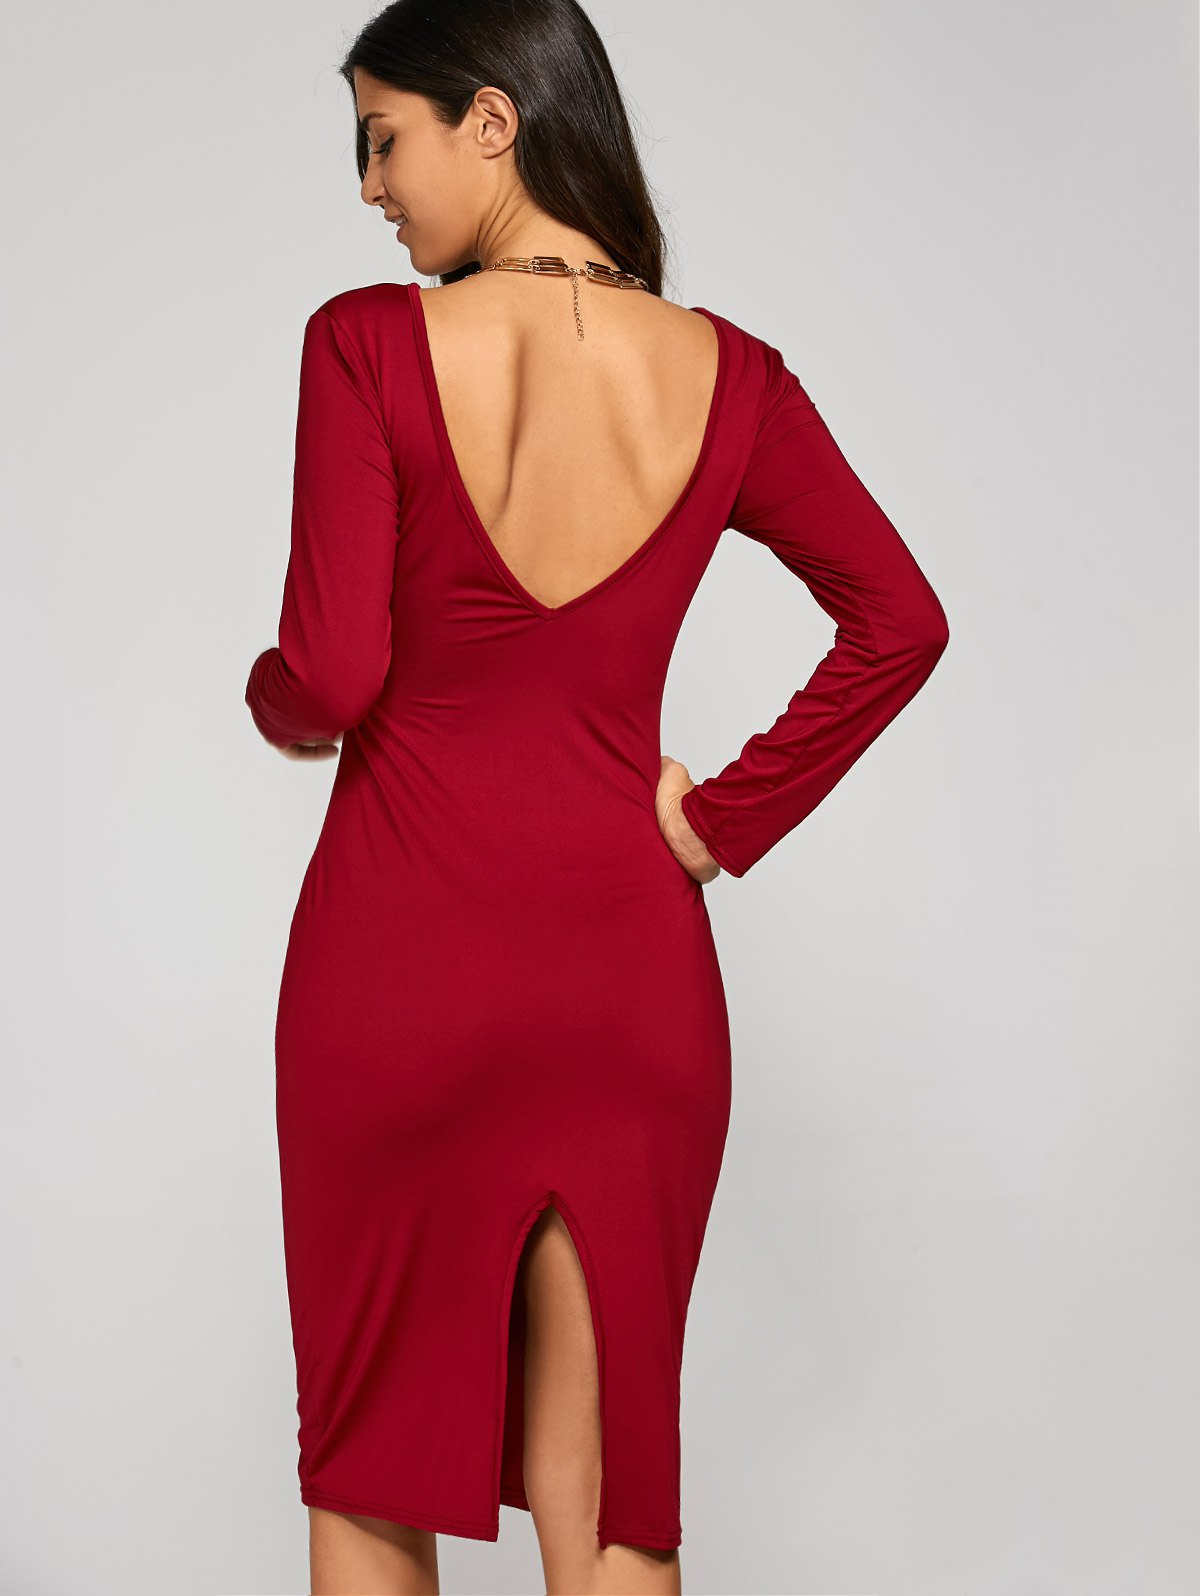 Chic Long Sleeve Backless Slit Pencil Cocktail Dress